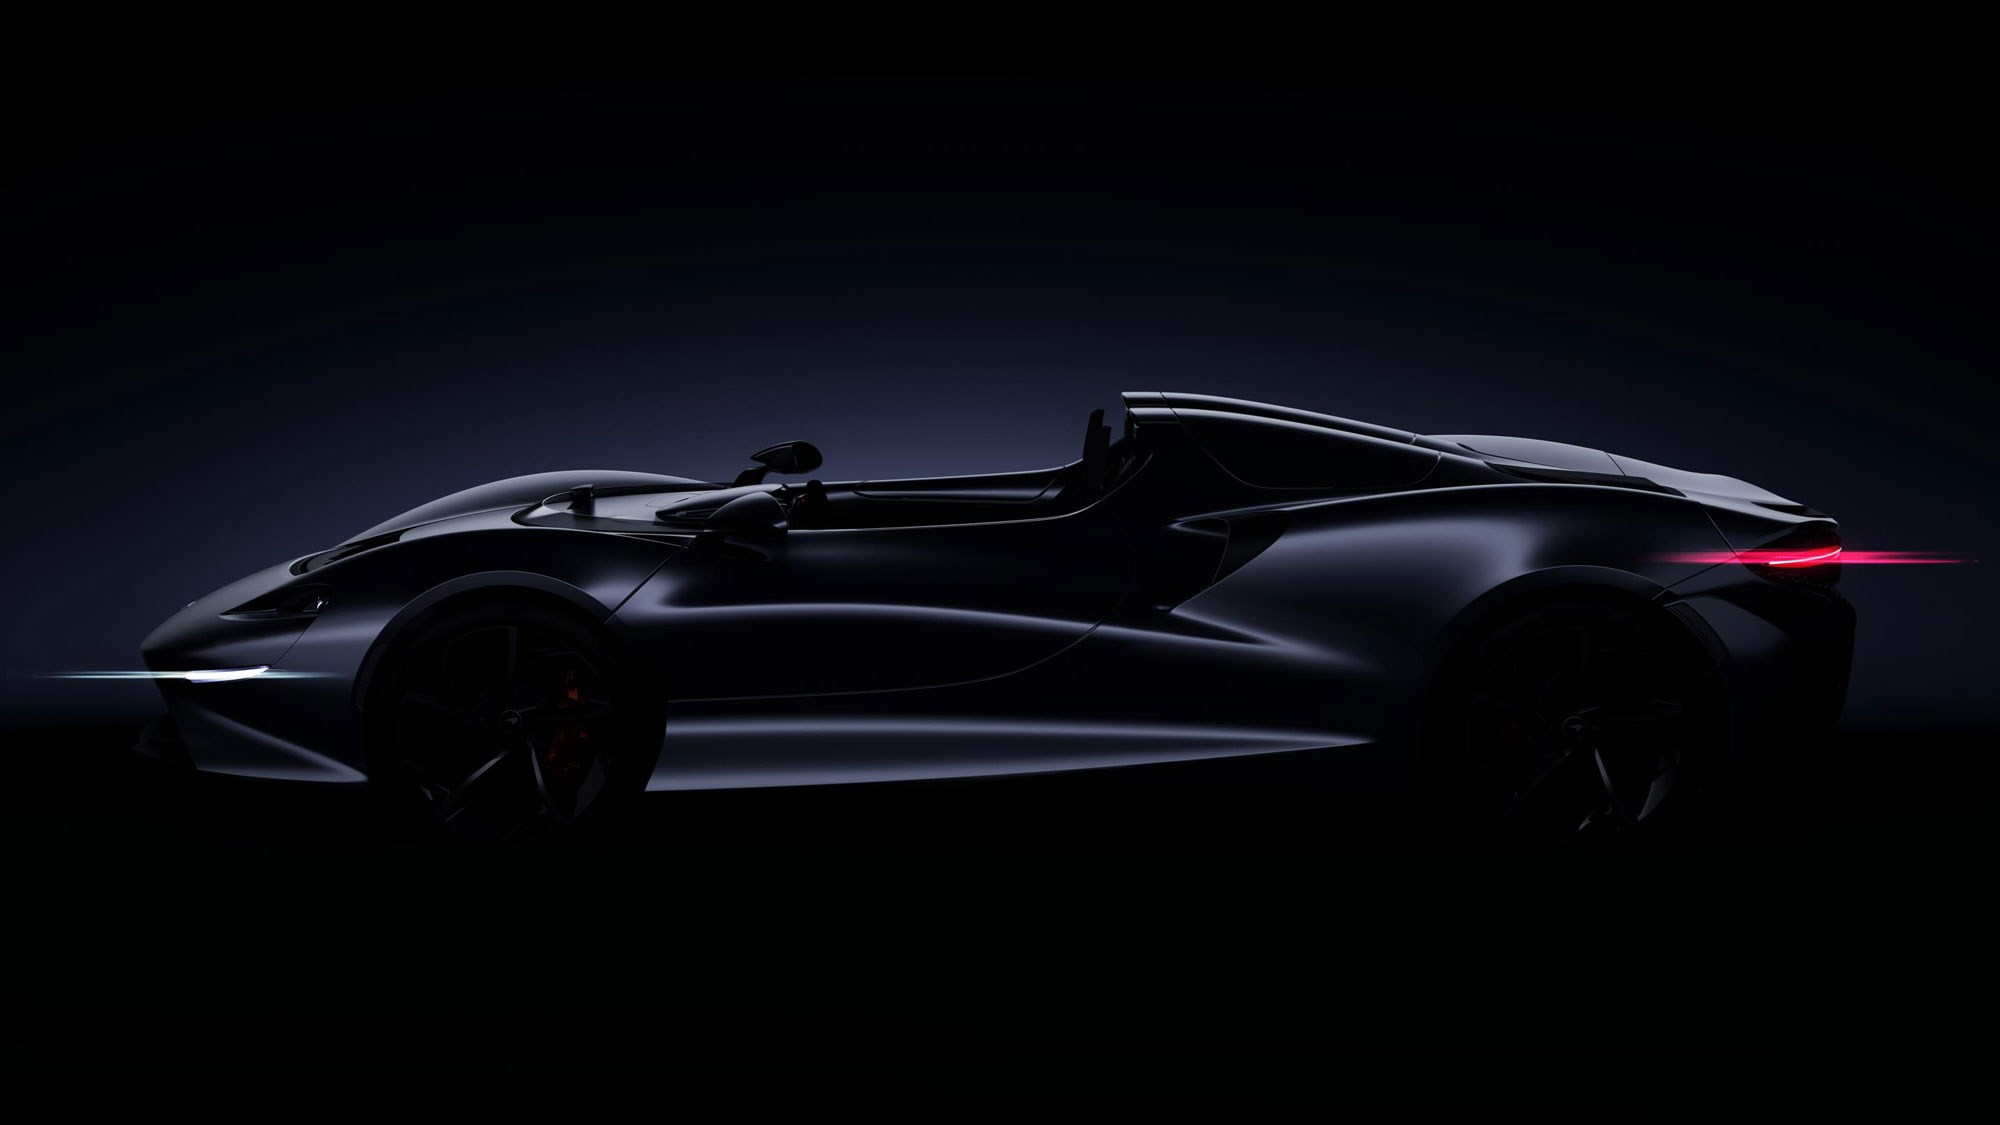 McLaren releases first teaser of all-new Ultimate Series model